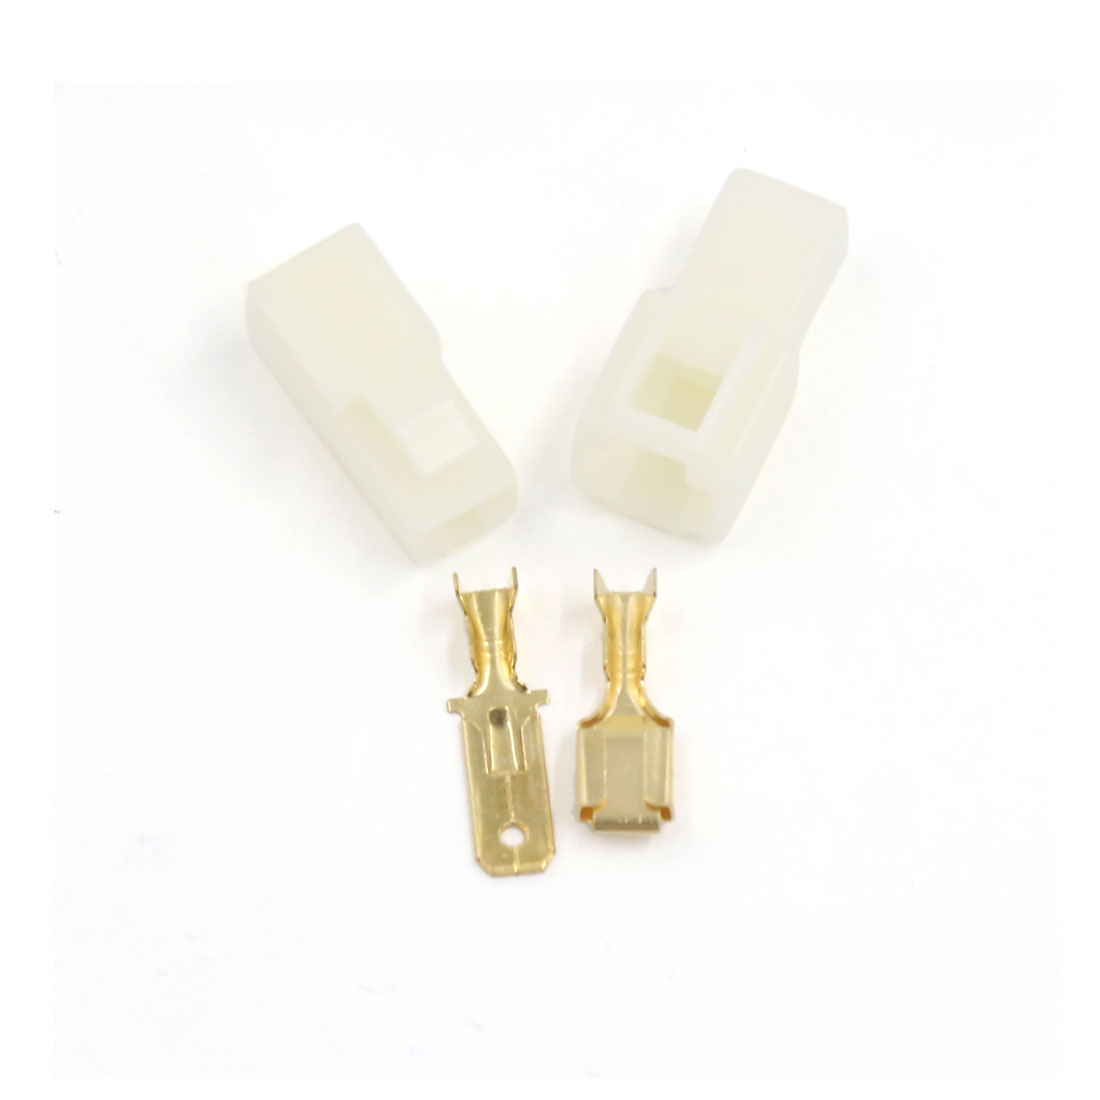 5 Sets 6.3mm Beige Automobile Electrical Connectors Male to Female Socket Plugs